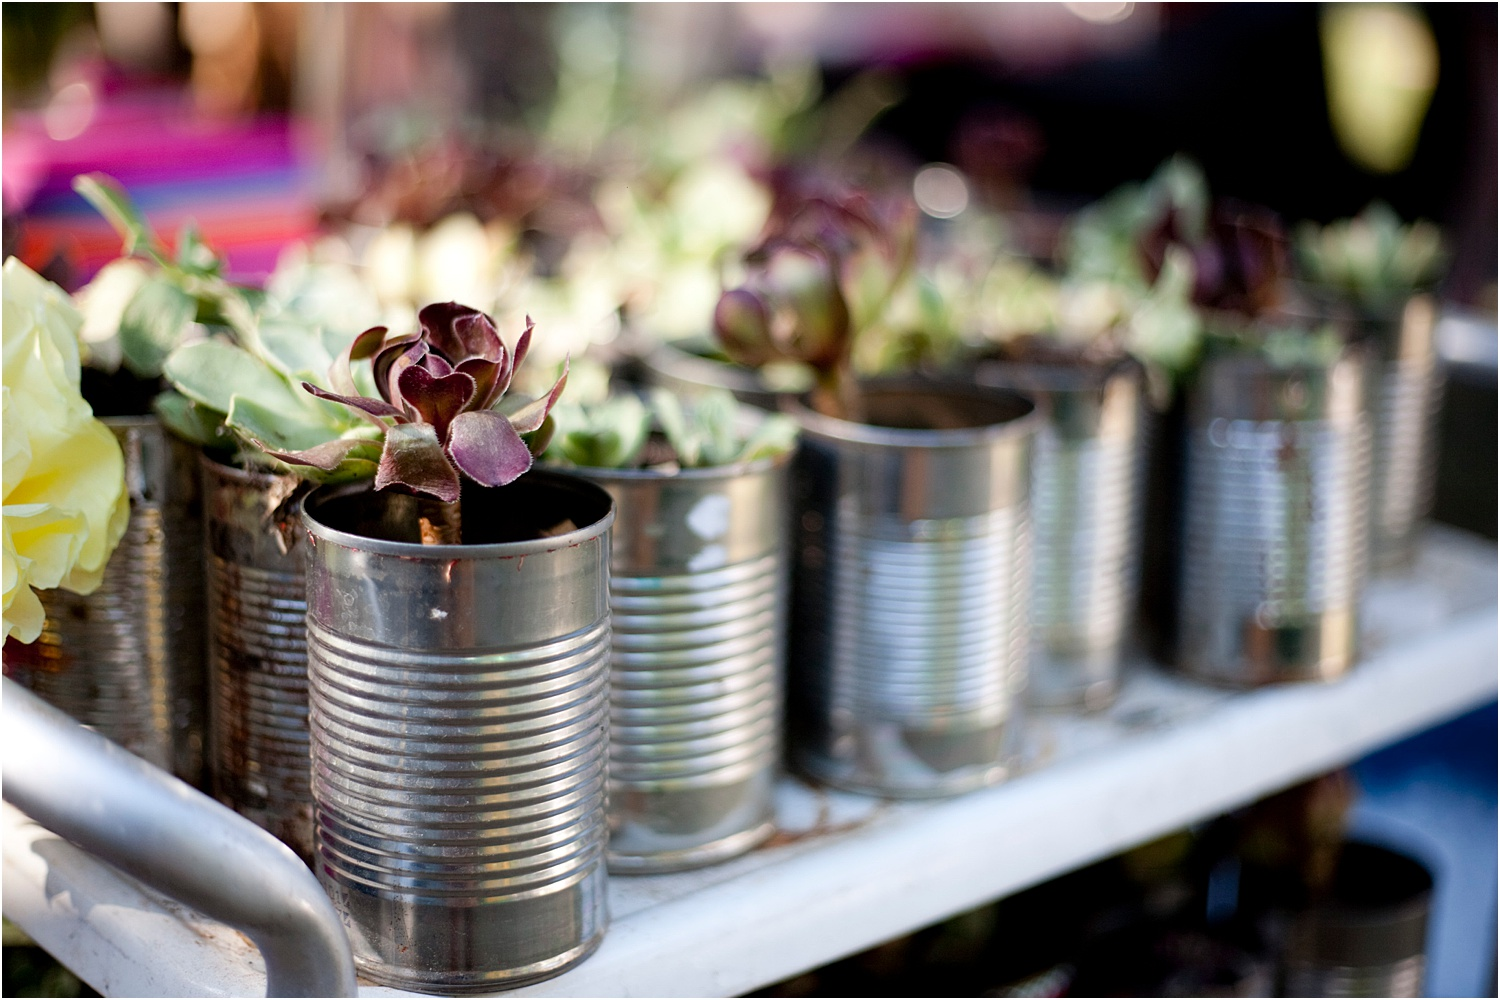 green-wedding-eco-friendly-favors-plants.jpg